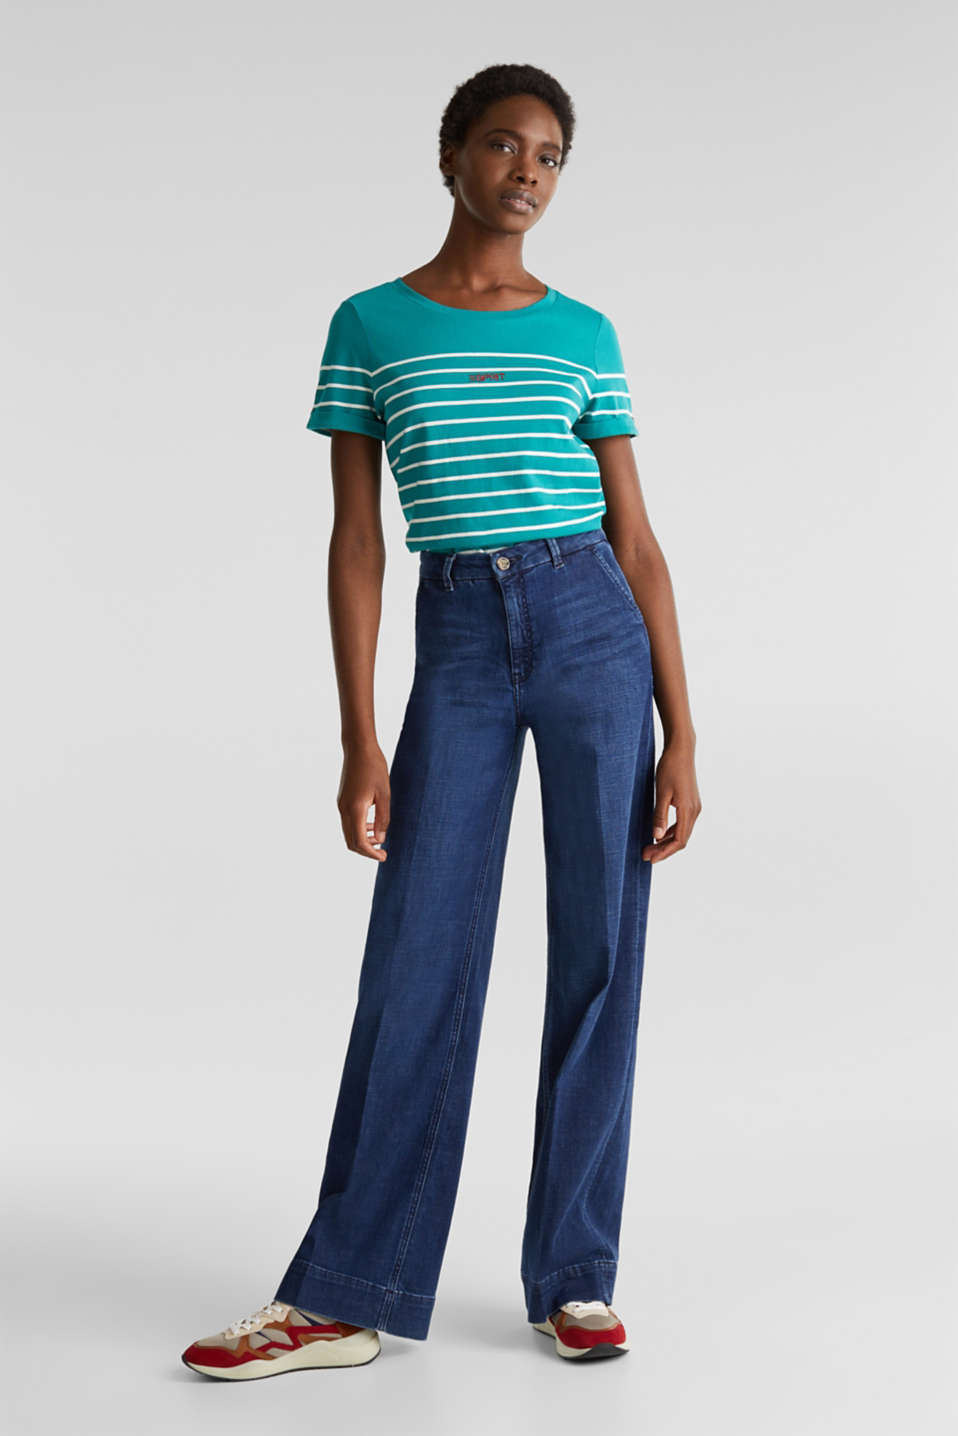 Striped top with embroidery, 100% cotton, TEAL GREEN, detail image number 1